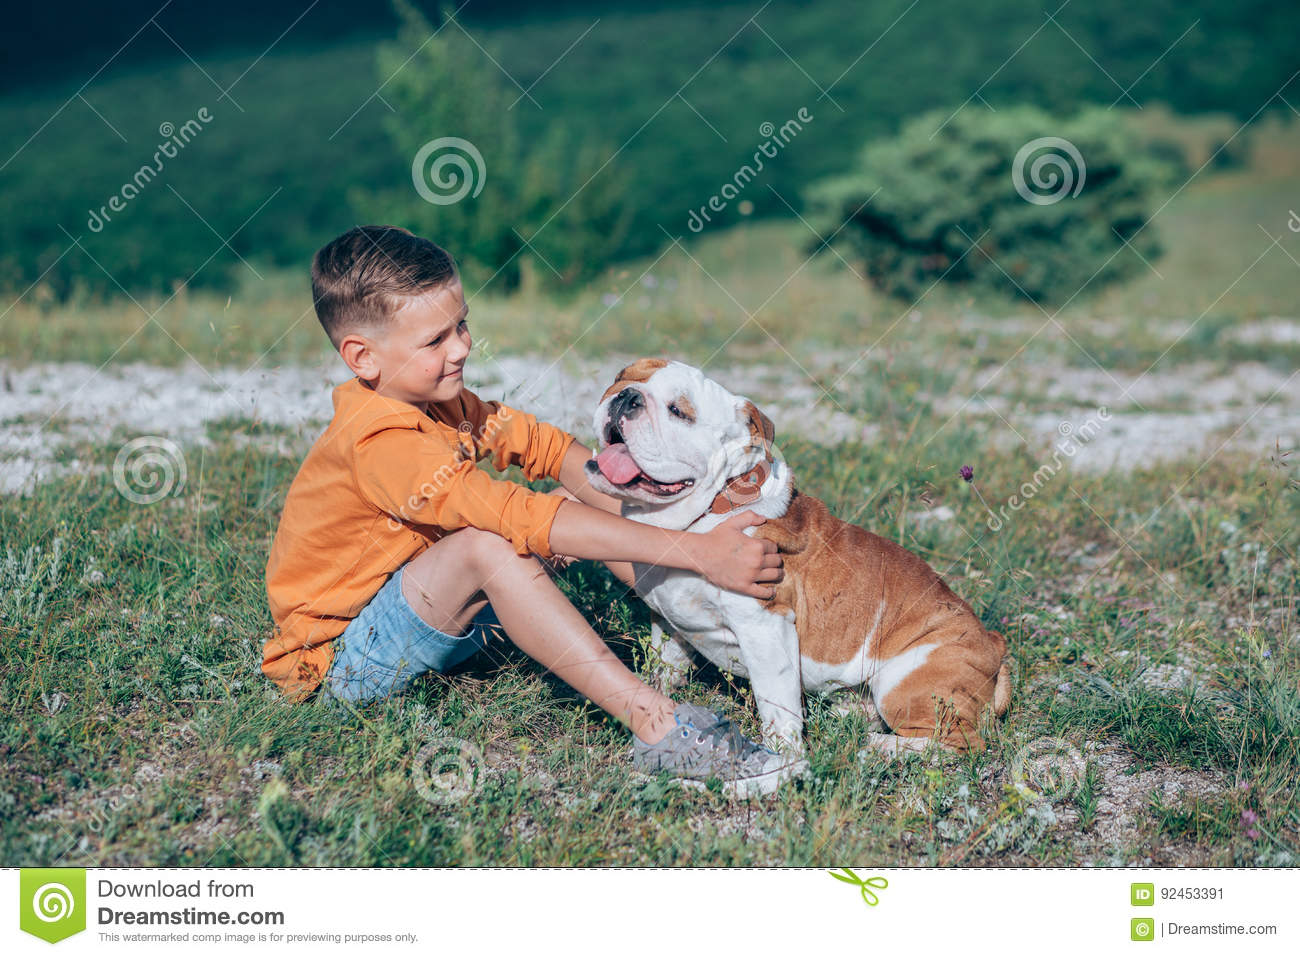 boy-running-field-bull-dog-mountains-924